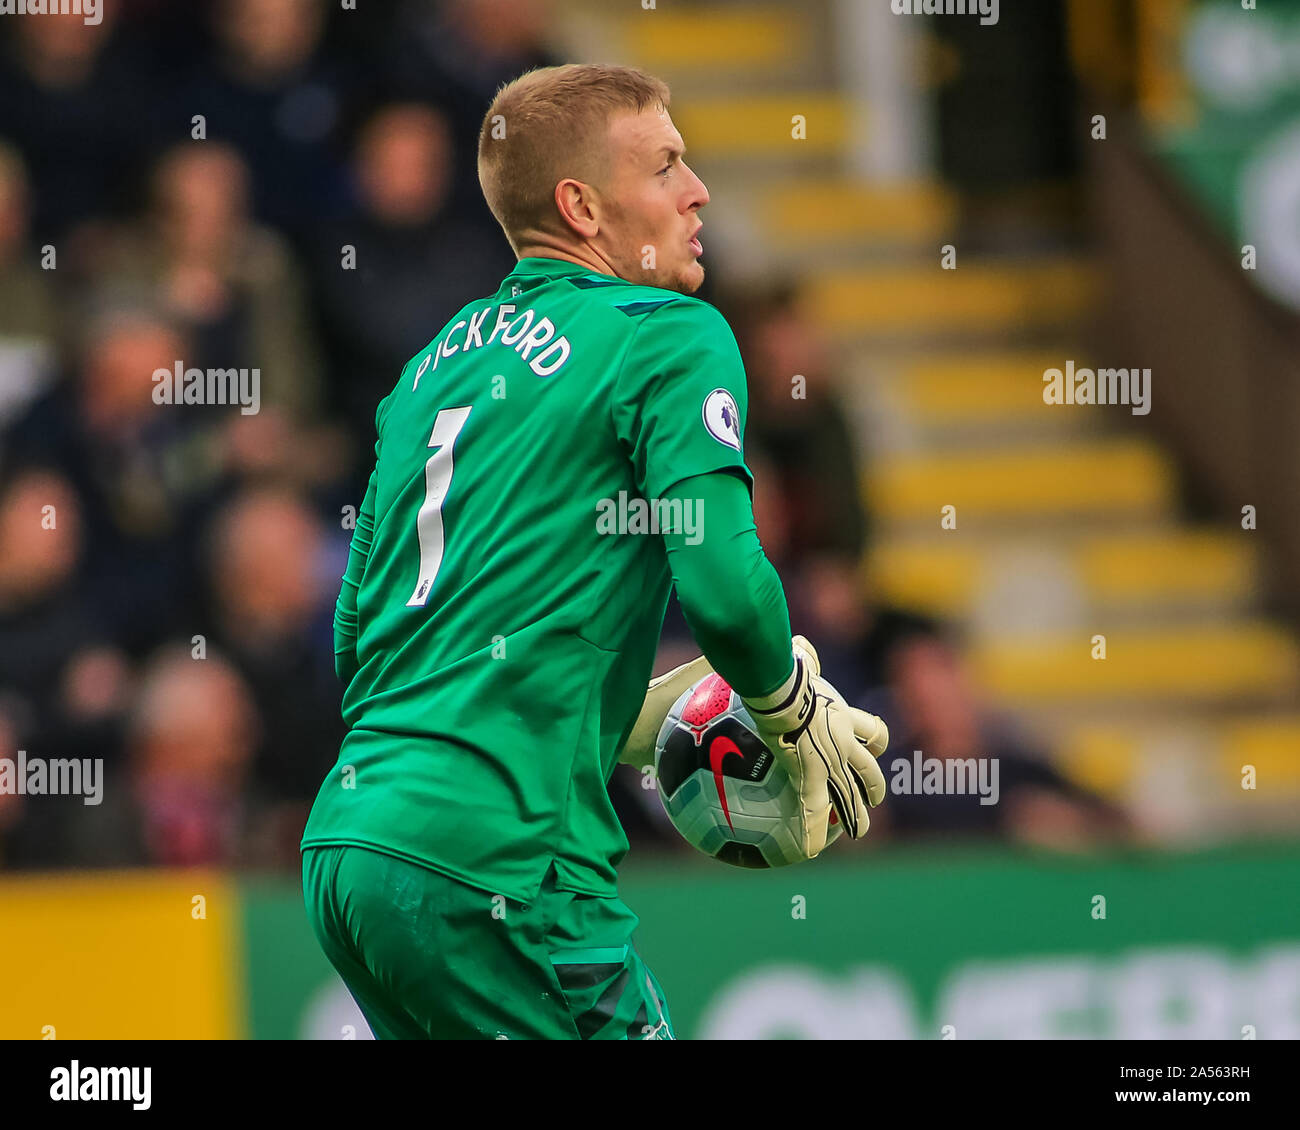 5th October 2019 Turf Moor Burnley England Premier League Burnley V Everton Jordan Pickford 1 Of Everton During The Game Credit Craig Milner News Images Stock Photo Alamy